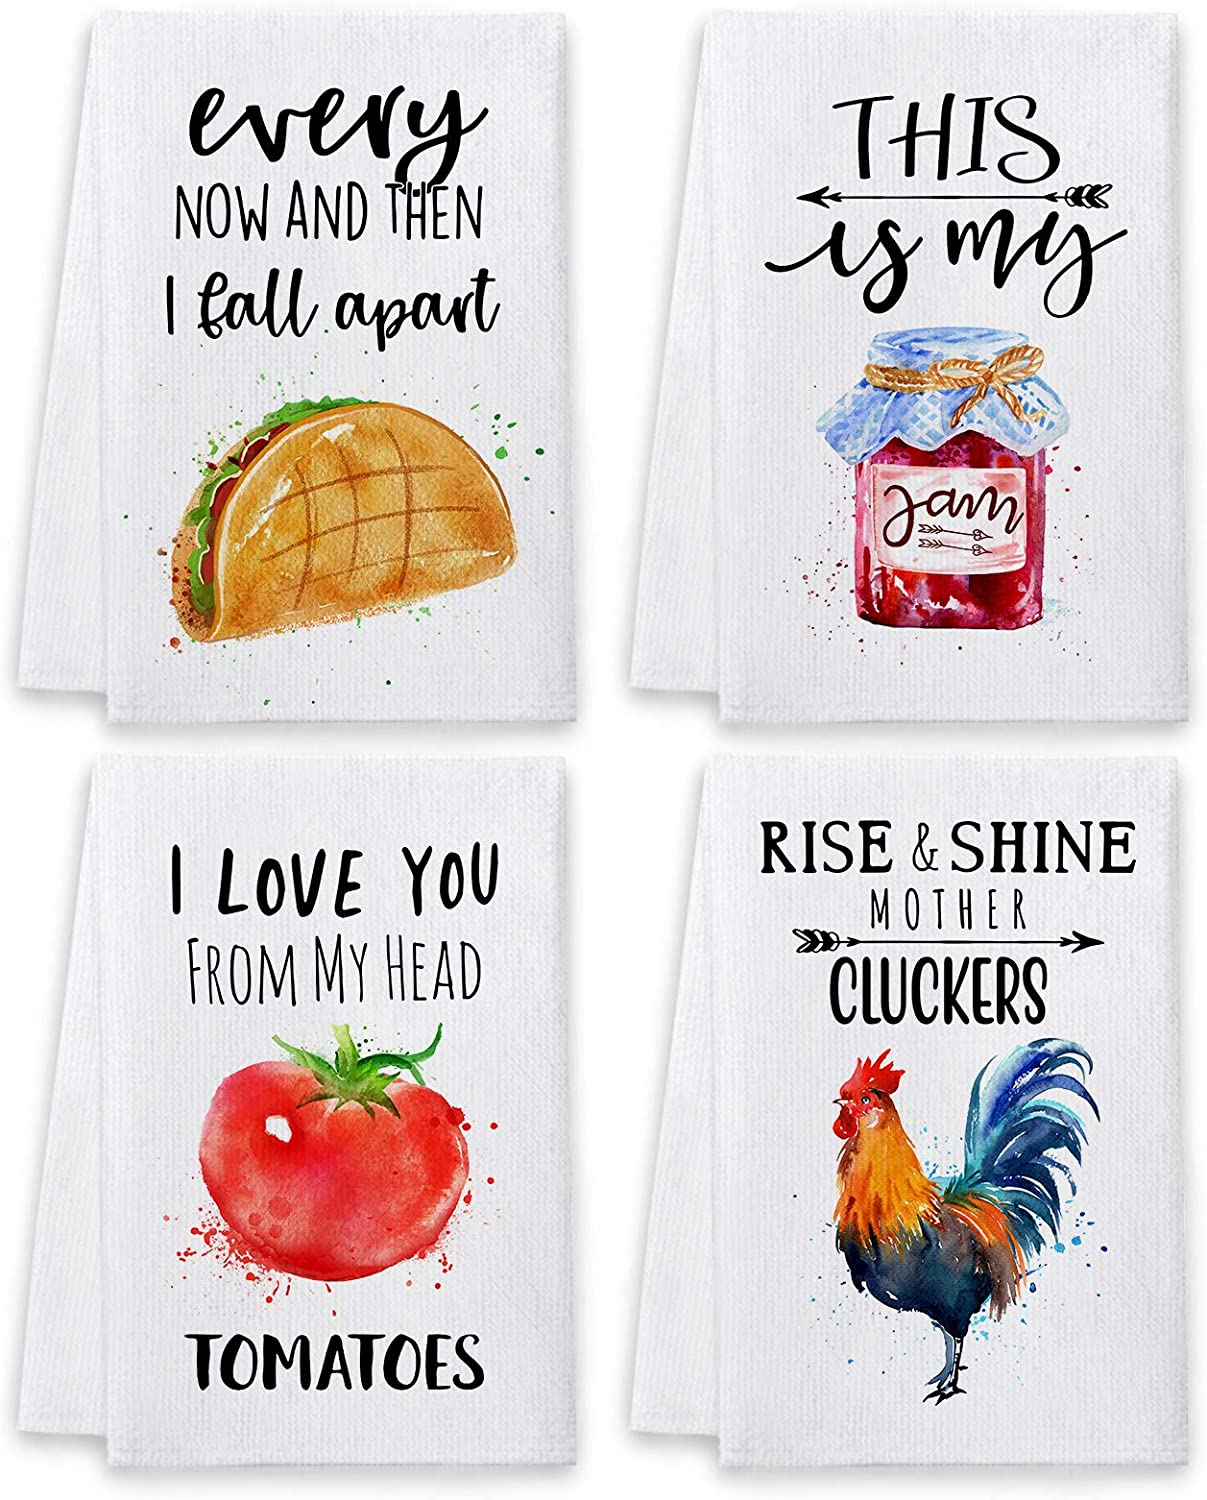 Bonsai Tree Funny Kitchen Towels and Dishcloths Sets of 4, Cute Quotes Dish Towels with Sayings, Fun White Farmhouse Absorbent Tea Towels Housewarming Gifts Decor Essentials for New Home